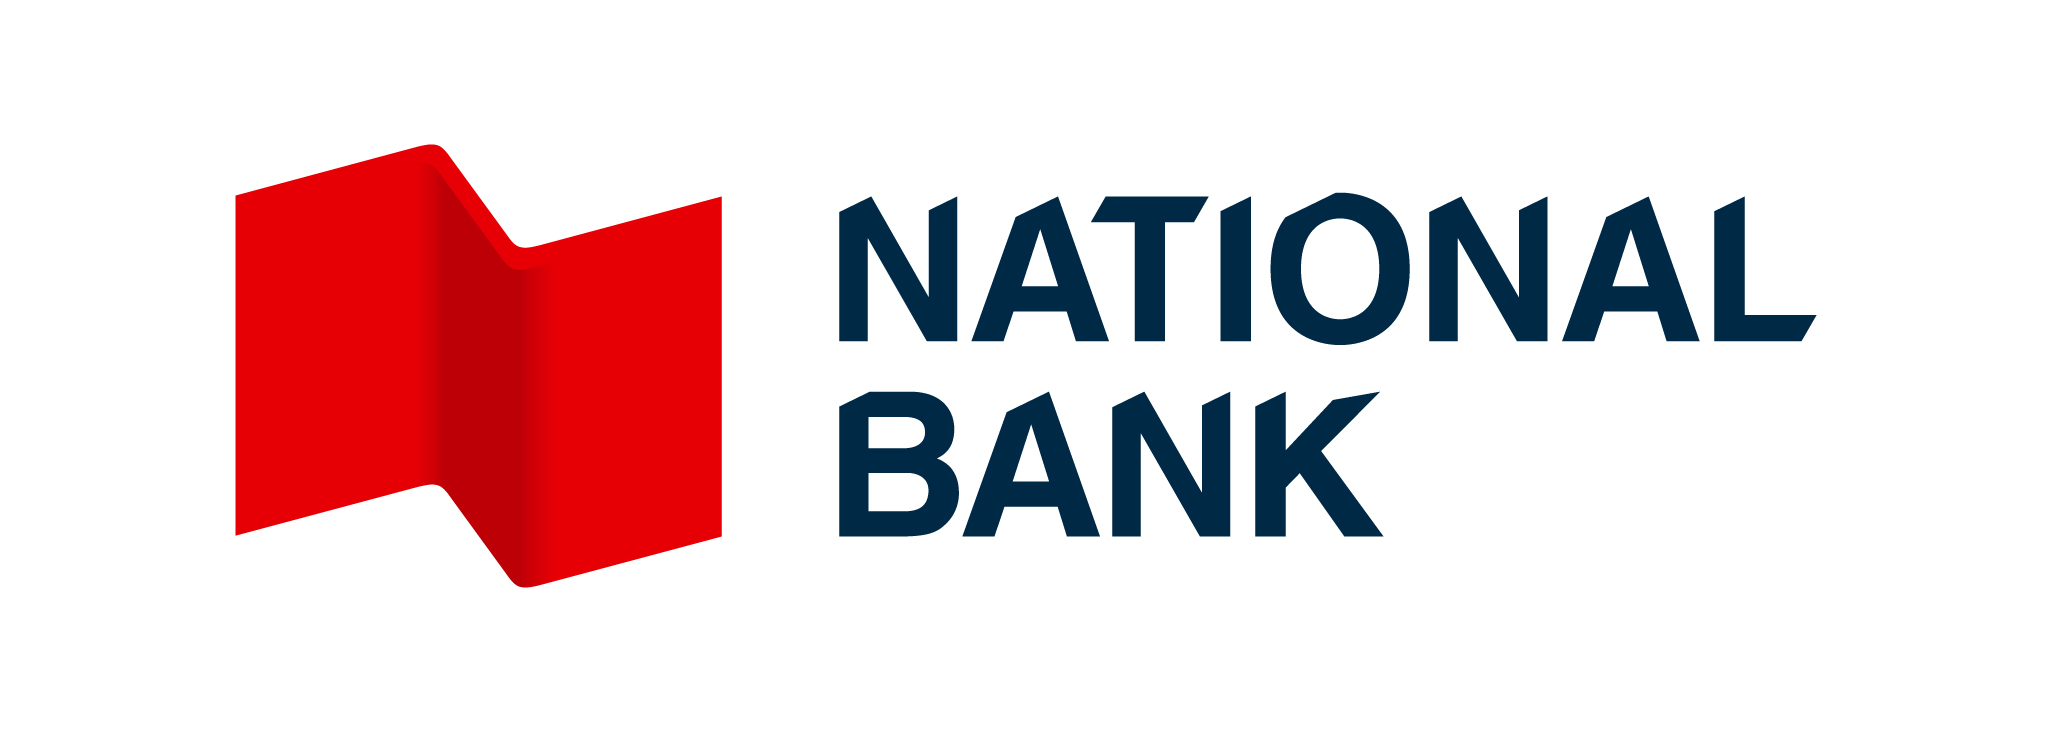 No national bank clipart png library stock Catalyst Accord: Women on Corporate Boards in Canada | Catalyst png library stock